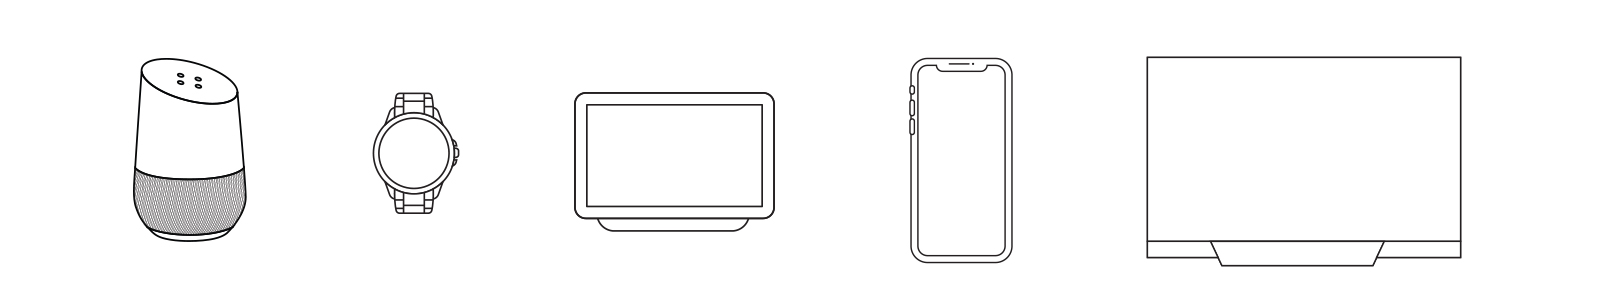 Line drawings of a Google Home device, smart watch, Google Home display, mobile device, and a TV.